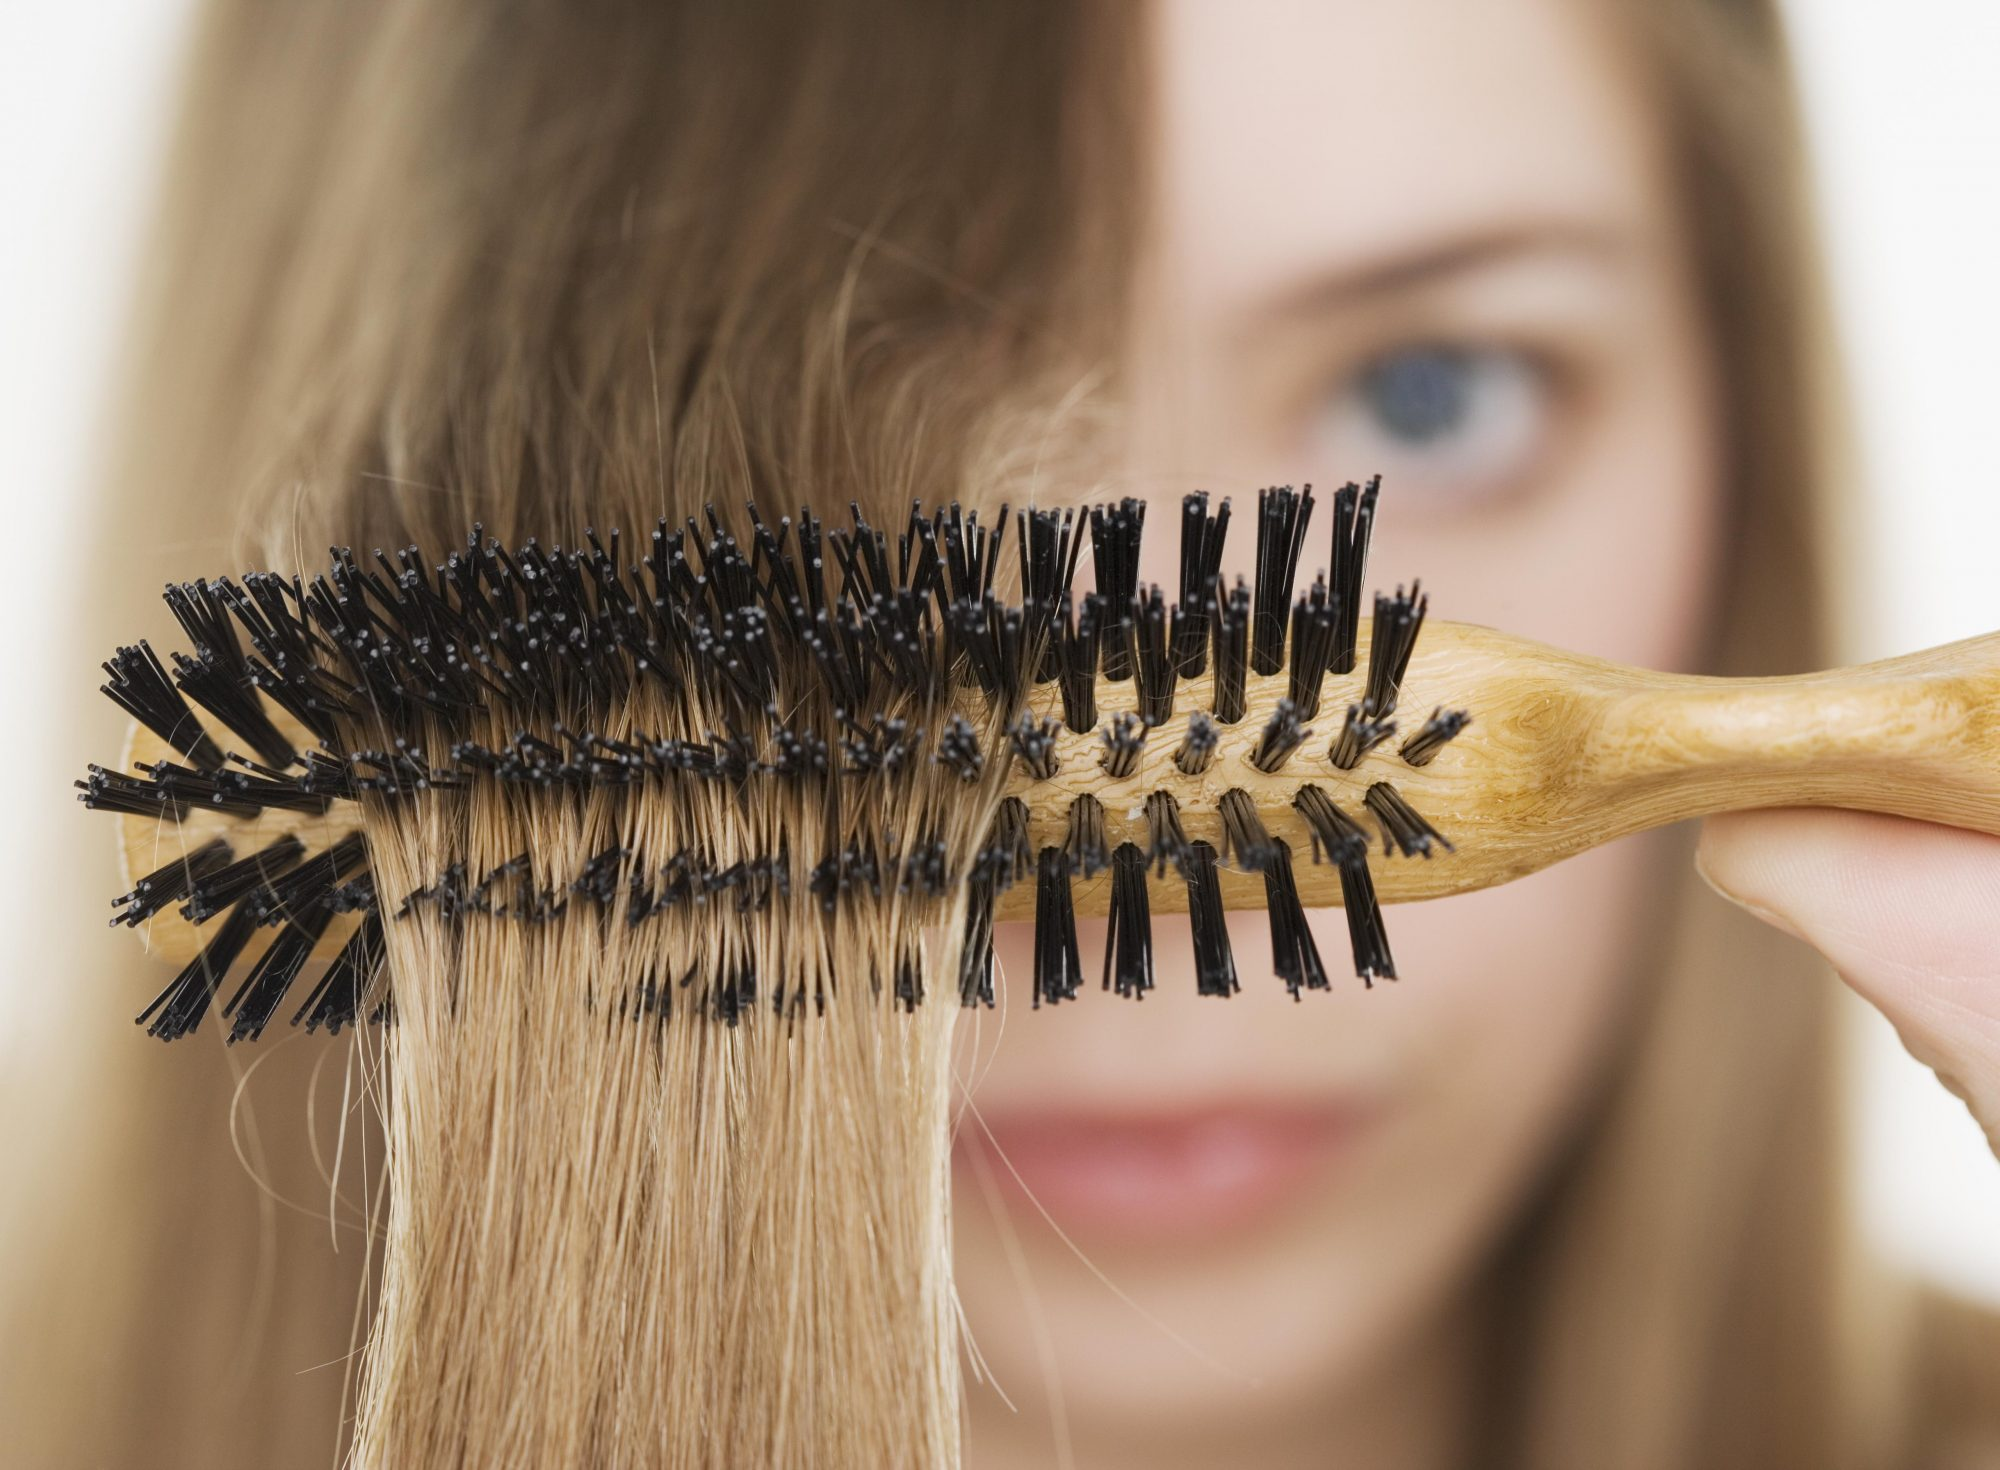 Myth: Sharing a comb, brush, or hat can spread lice